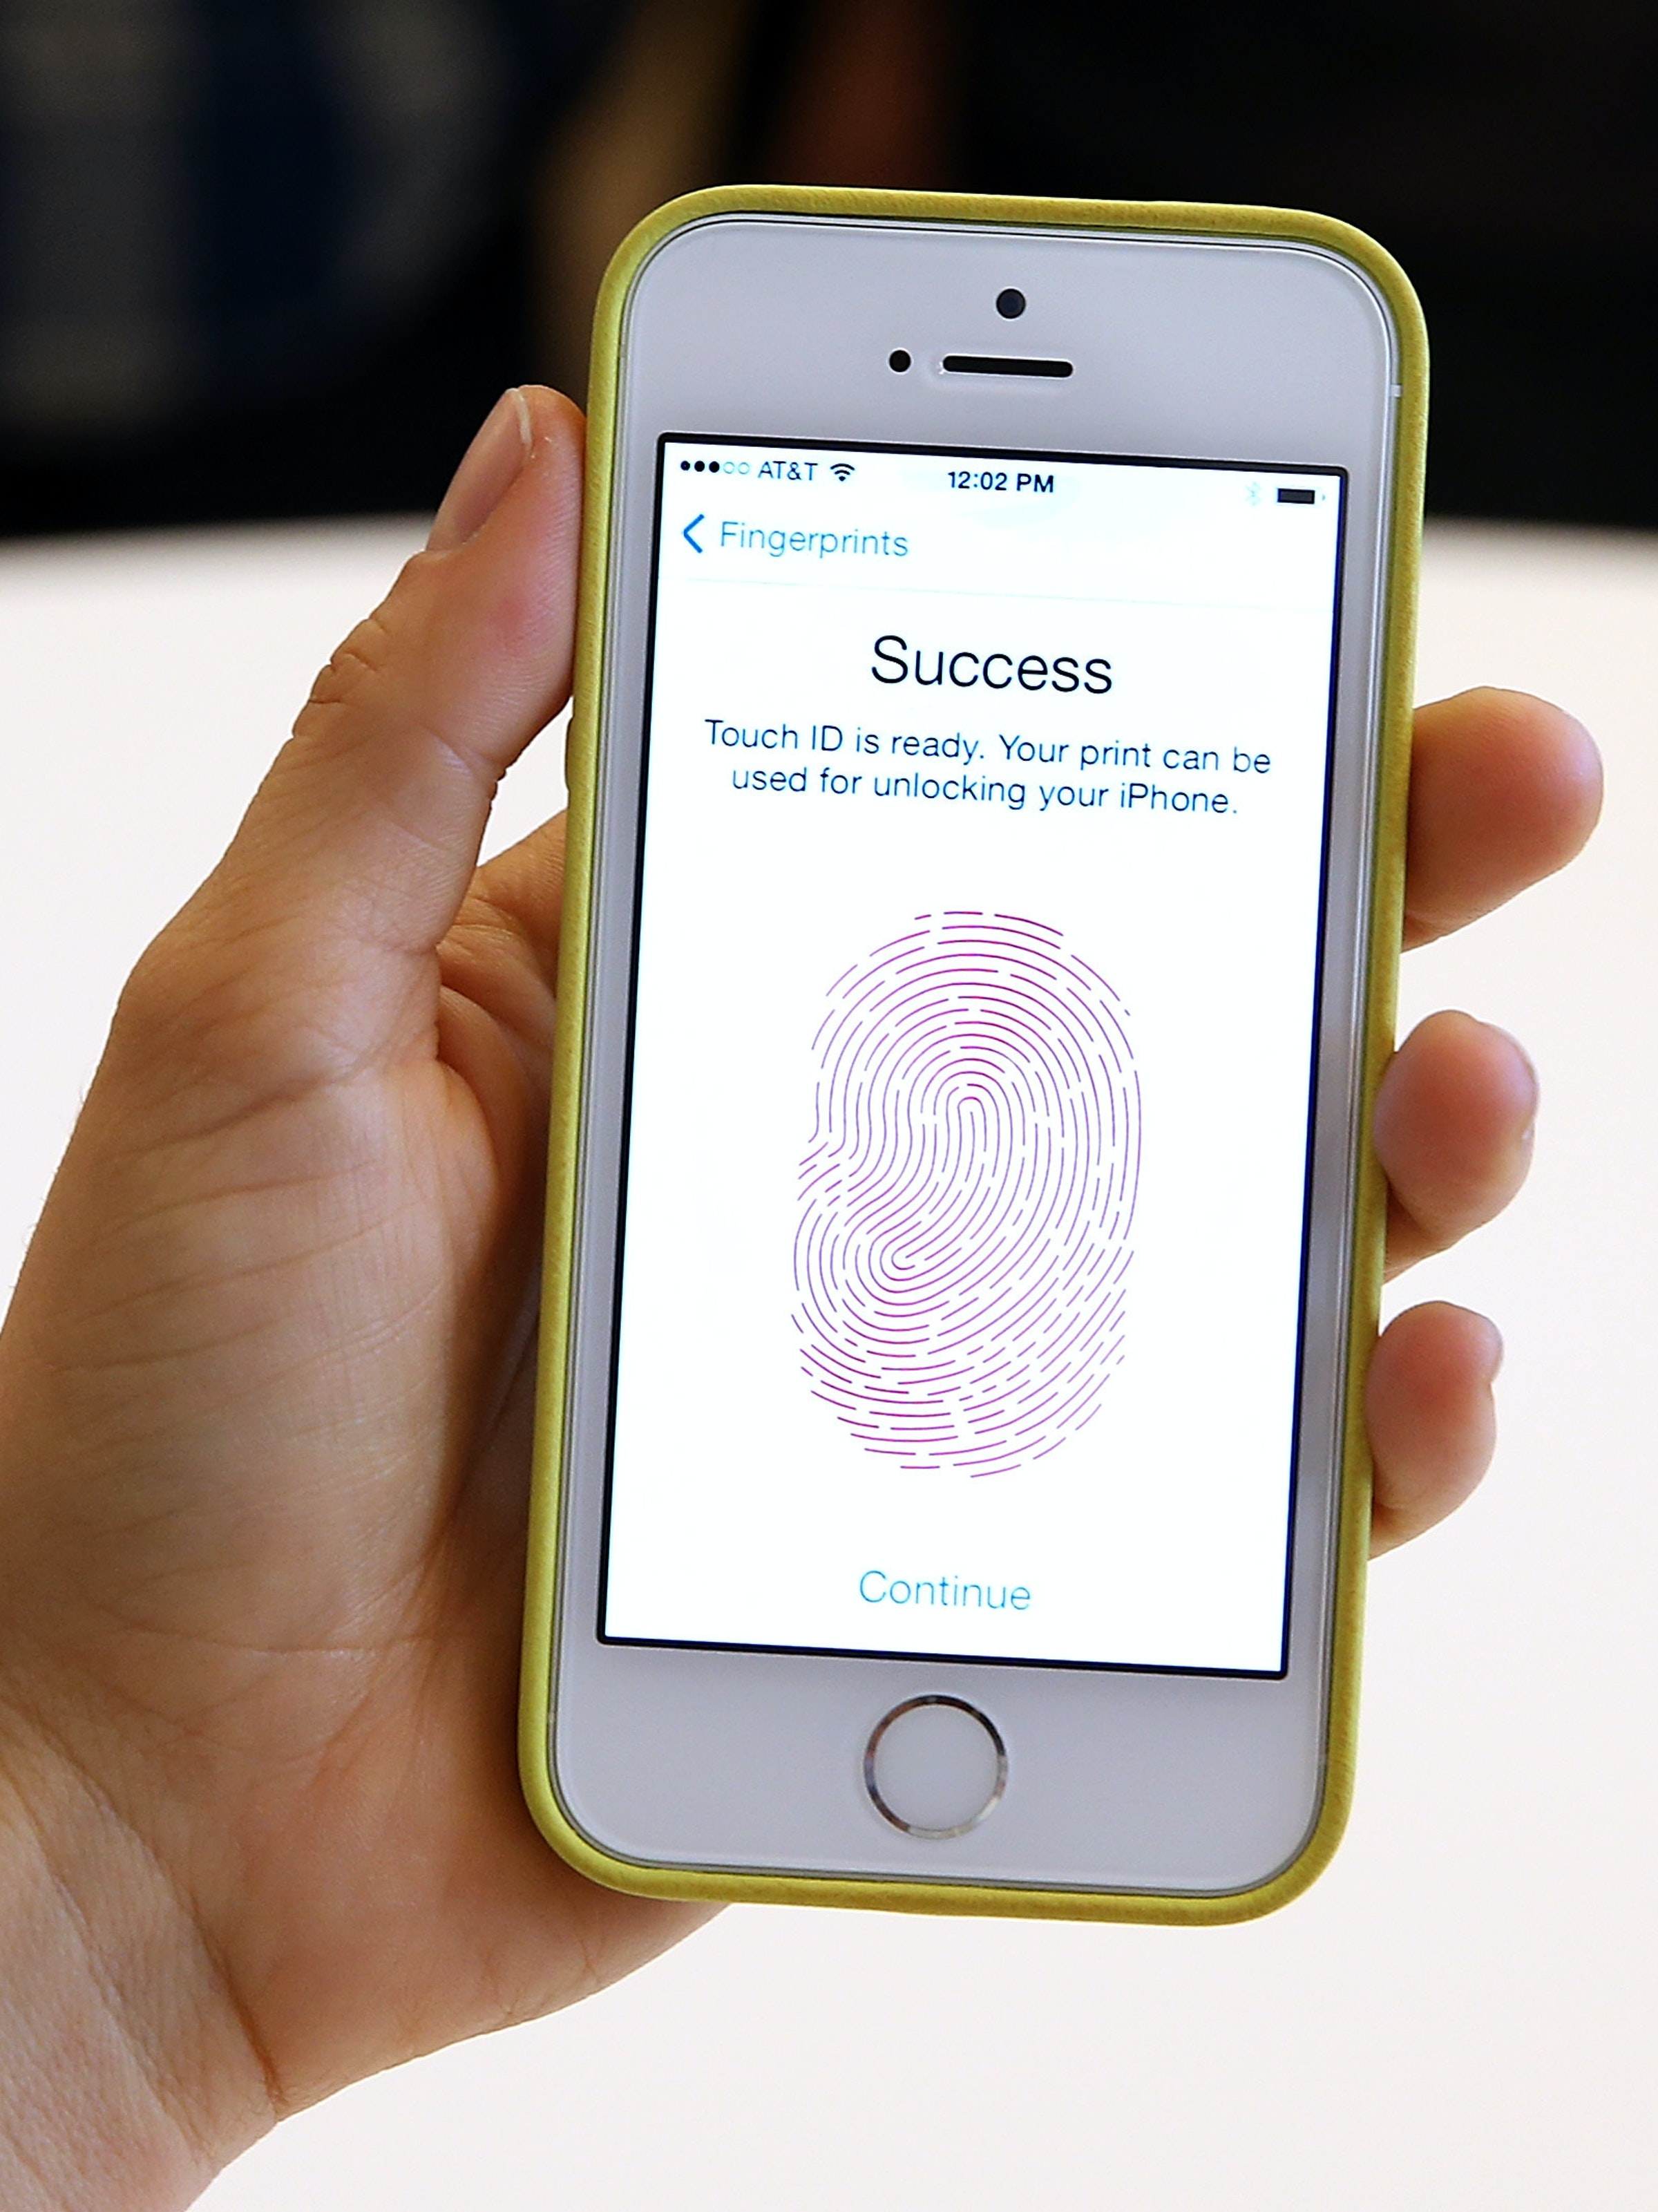 CUPERTINO, CA - SEPTEMBER 10:  The new iPhone 5S with fingerprint technology is displayed during an Apple product announcement at the Apple campus on September 10, 2013 in Cupertino, California. The company launched the new iPhone 5C model that will run iOS 7 is made from hard-coated polycarbonate and comes in various colors and the iPhone 5S that features fingerprint recognition security.  (Photo by Justin Sullivan/Getty Images)